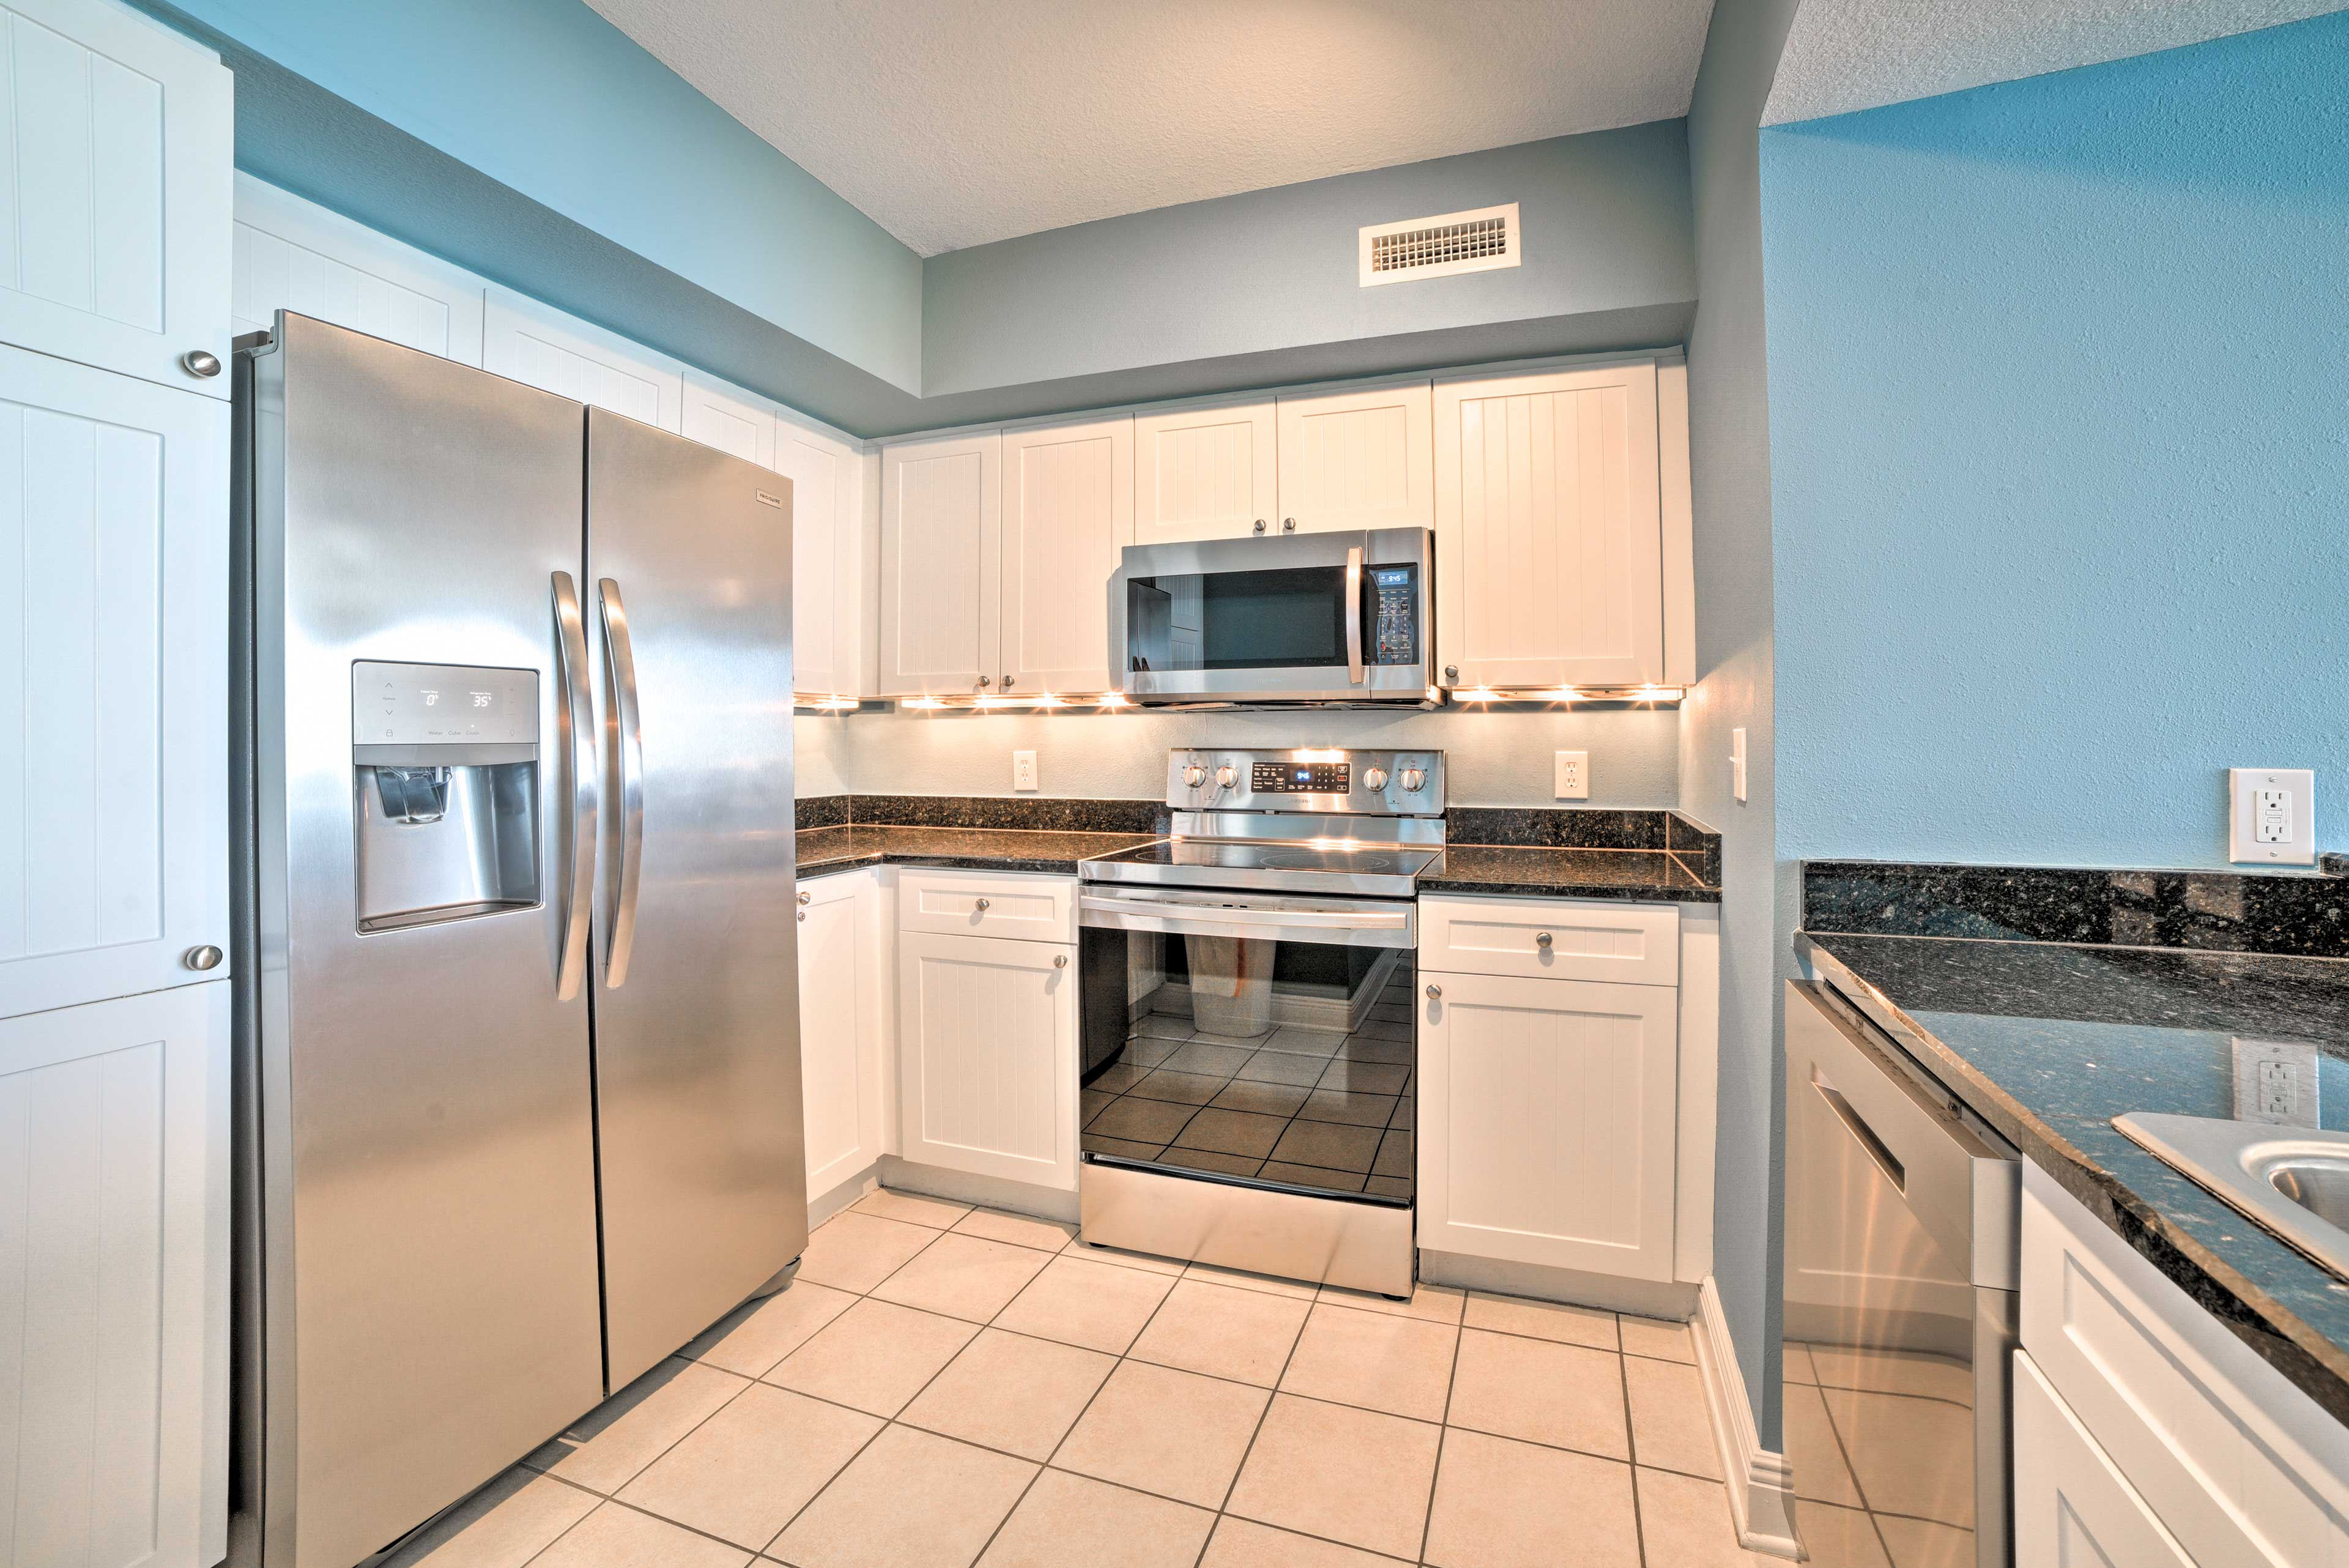 Fully Equipped Kitchen | Stainless Steel Appliances